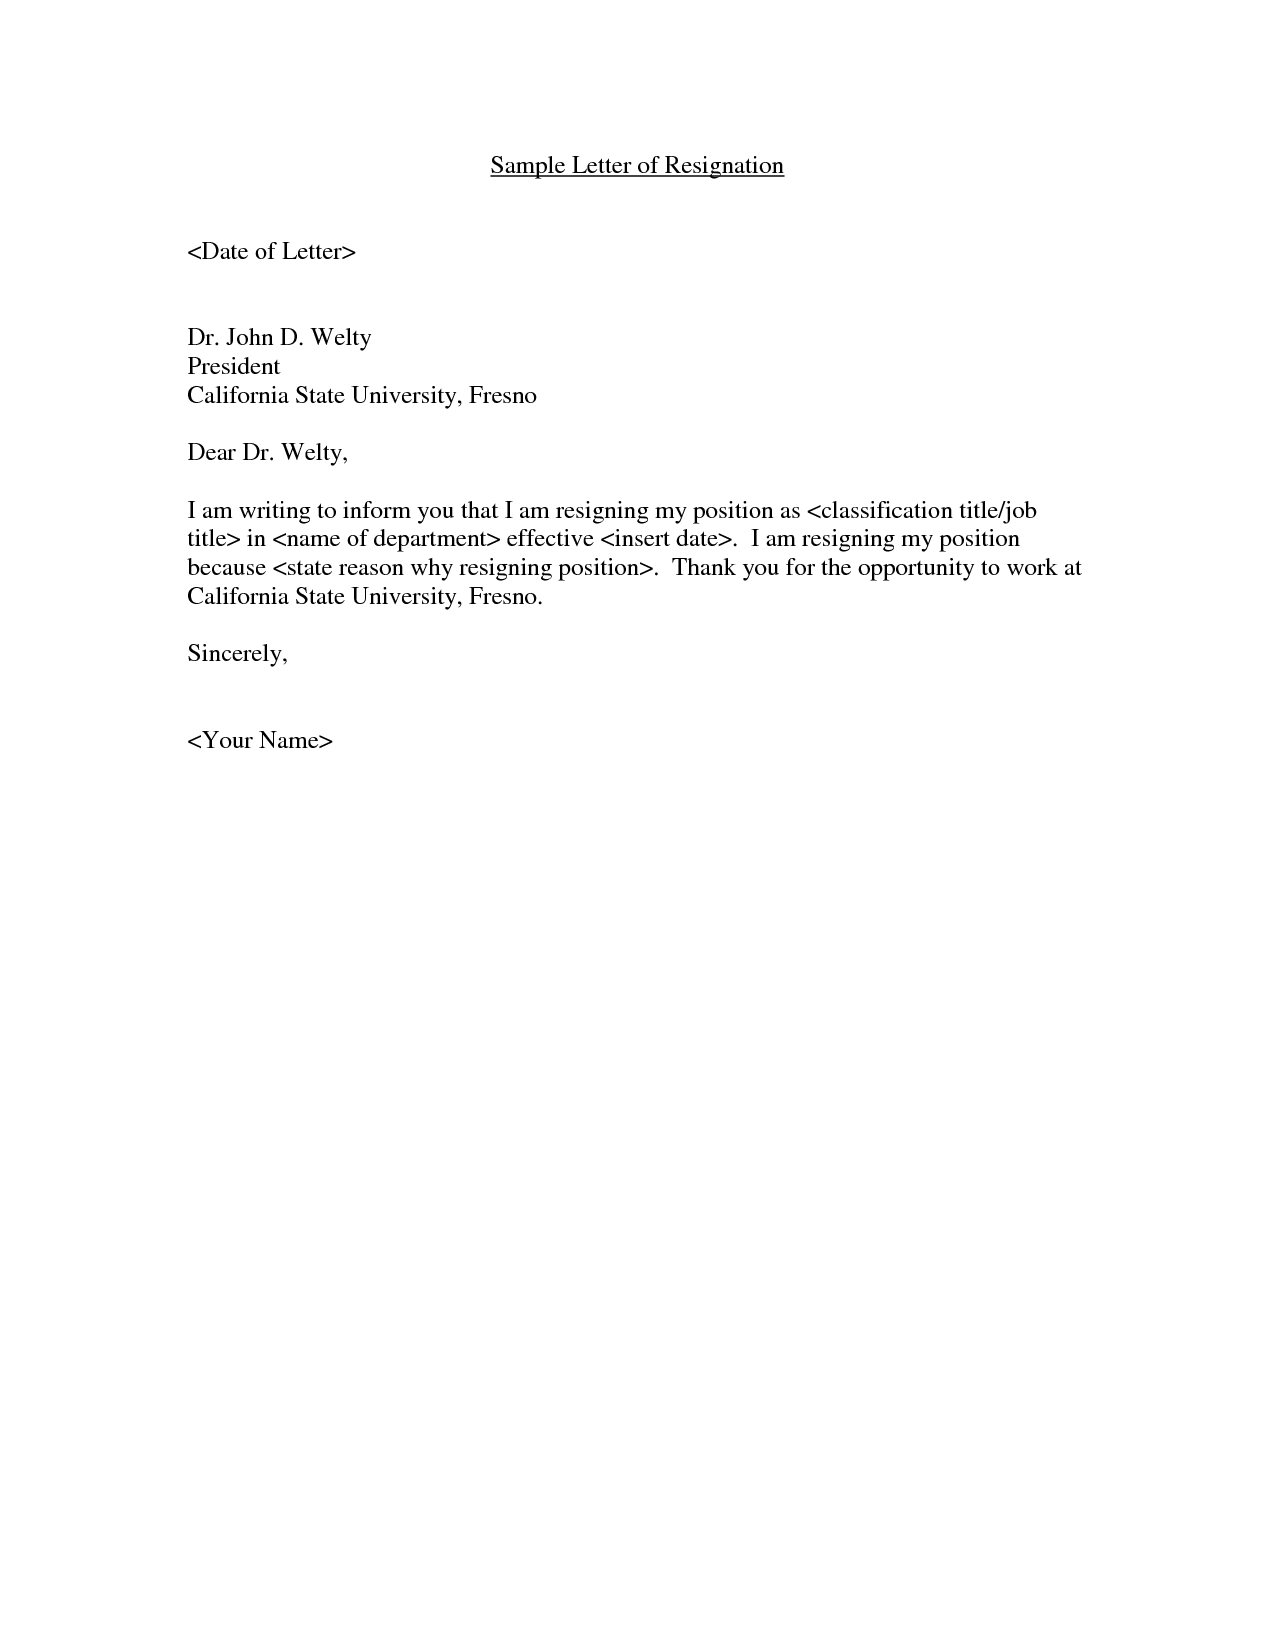 Example Of A Brief Resignation Letter sample resignation letters for personal reasons